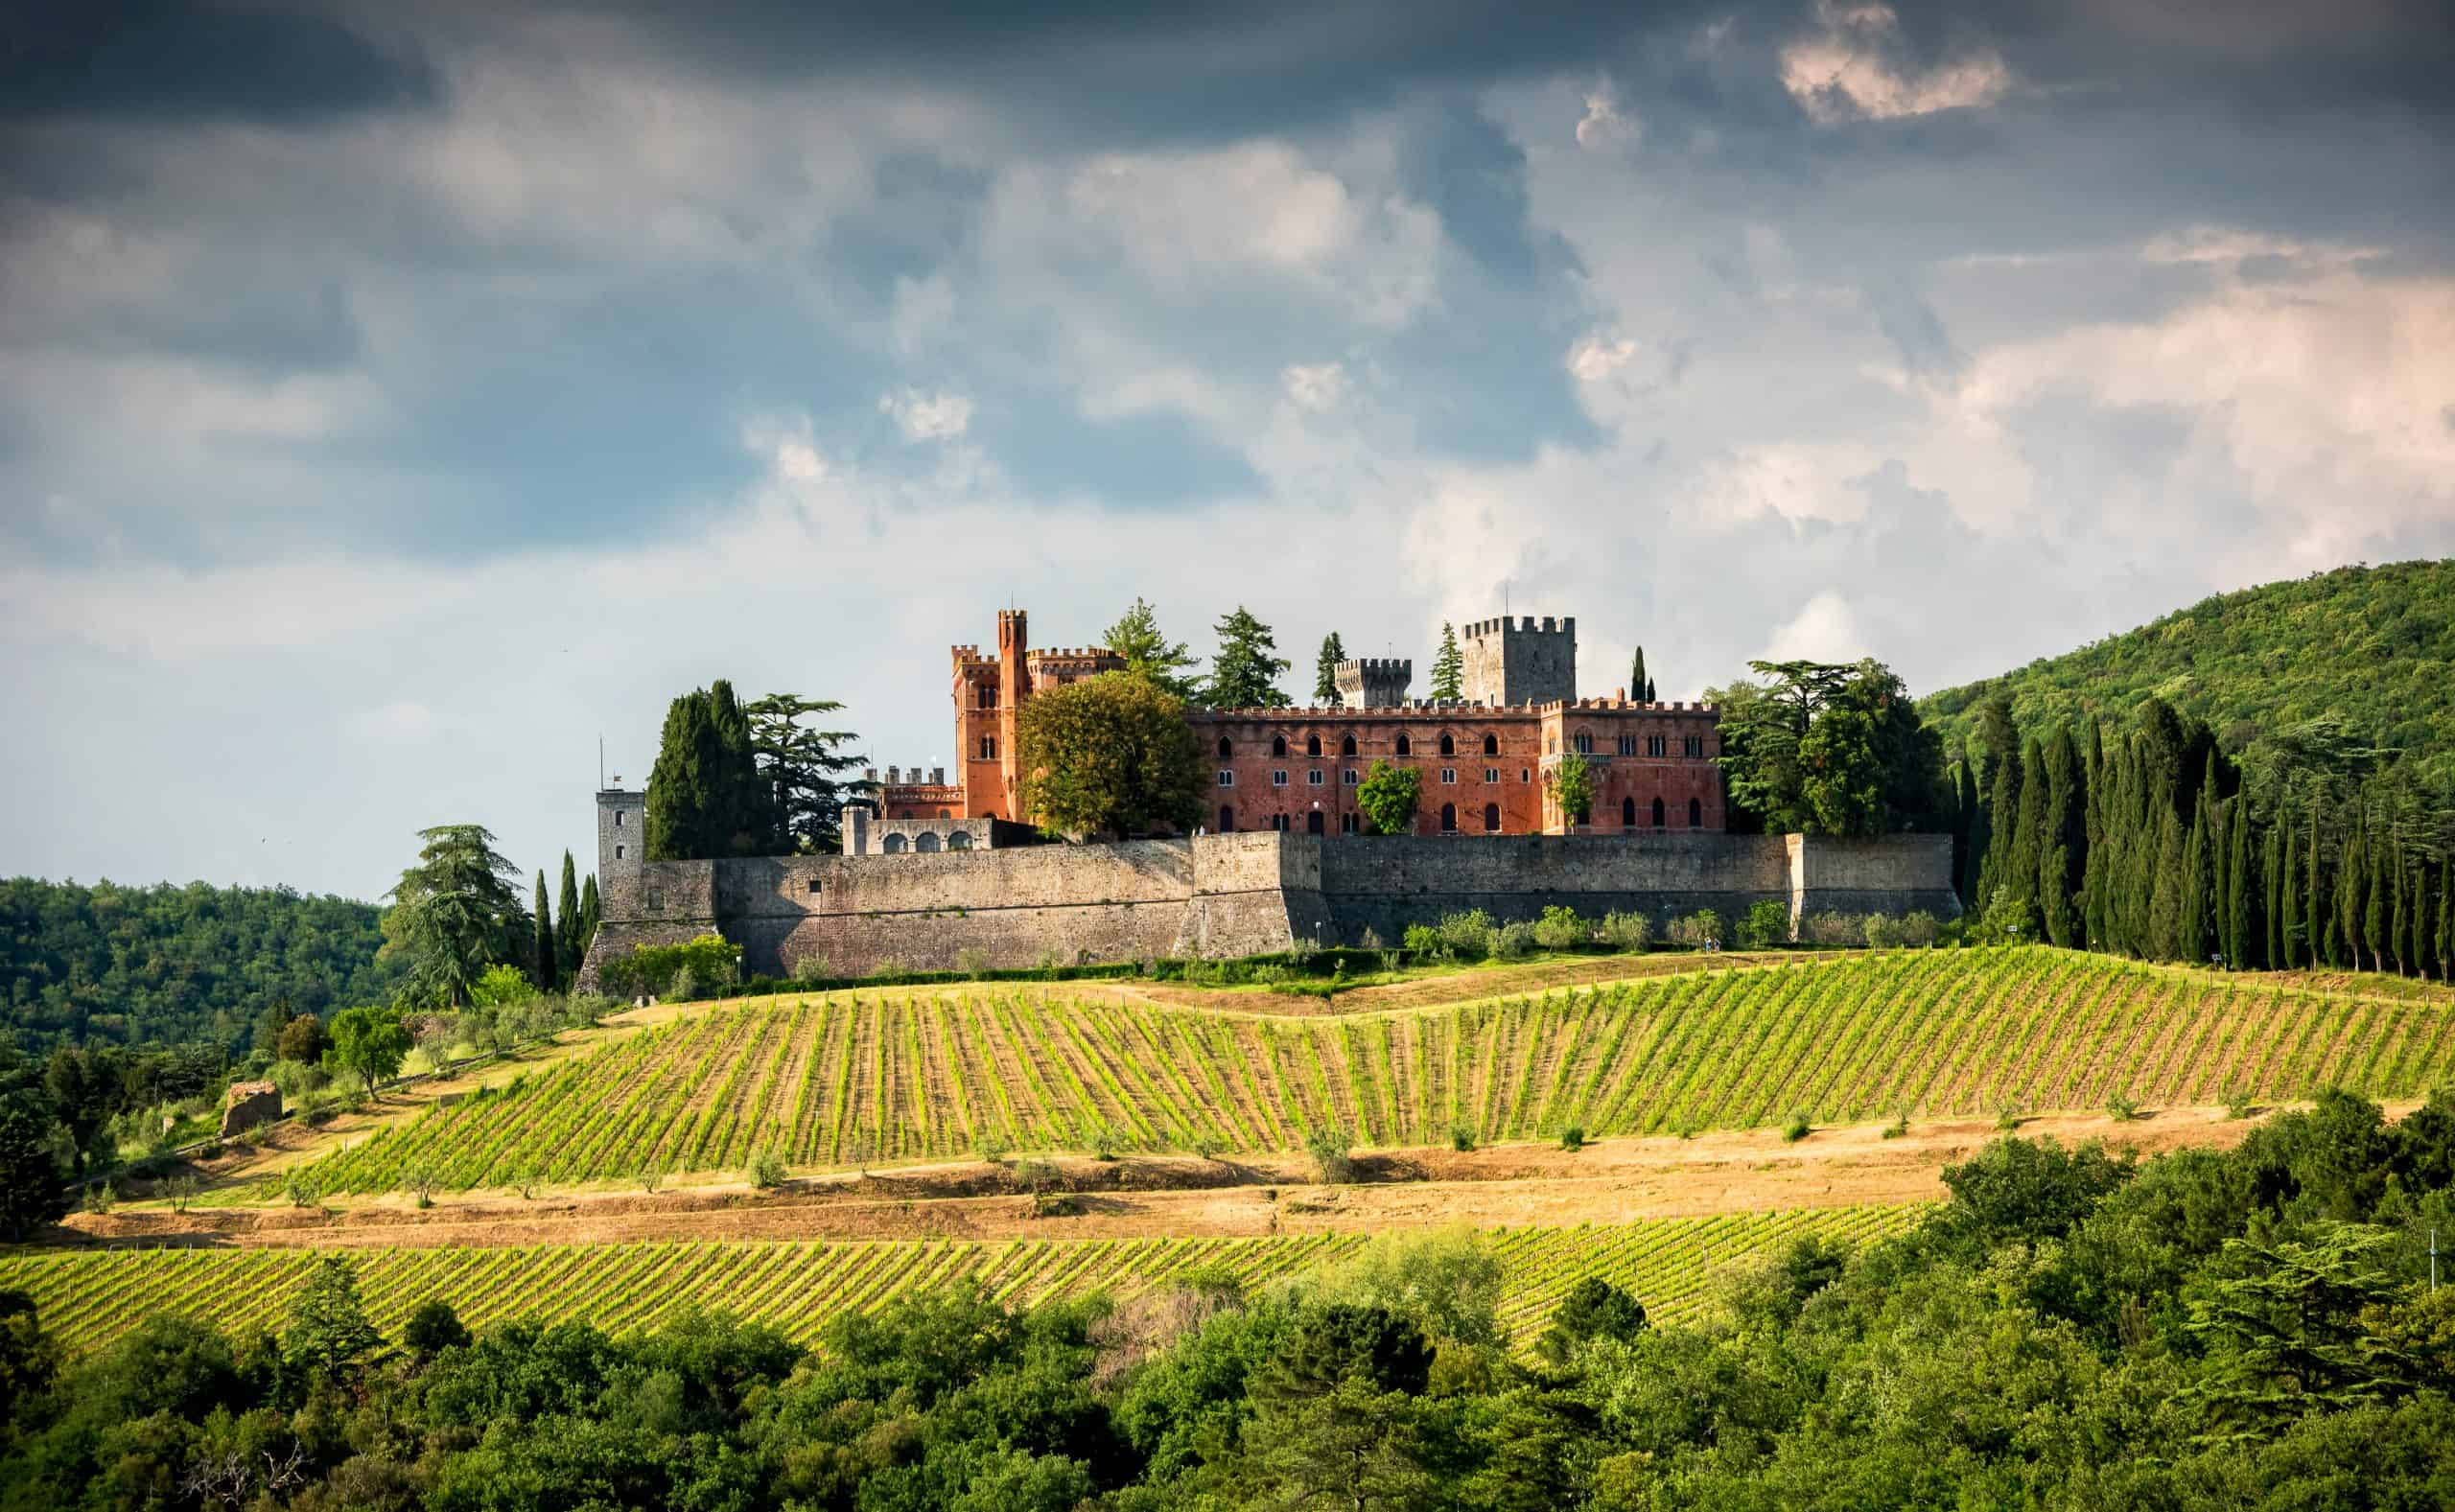 Tuscan Castle Overlooking vineyards